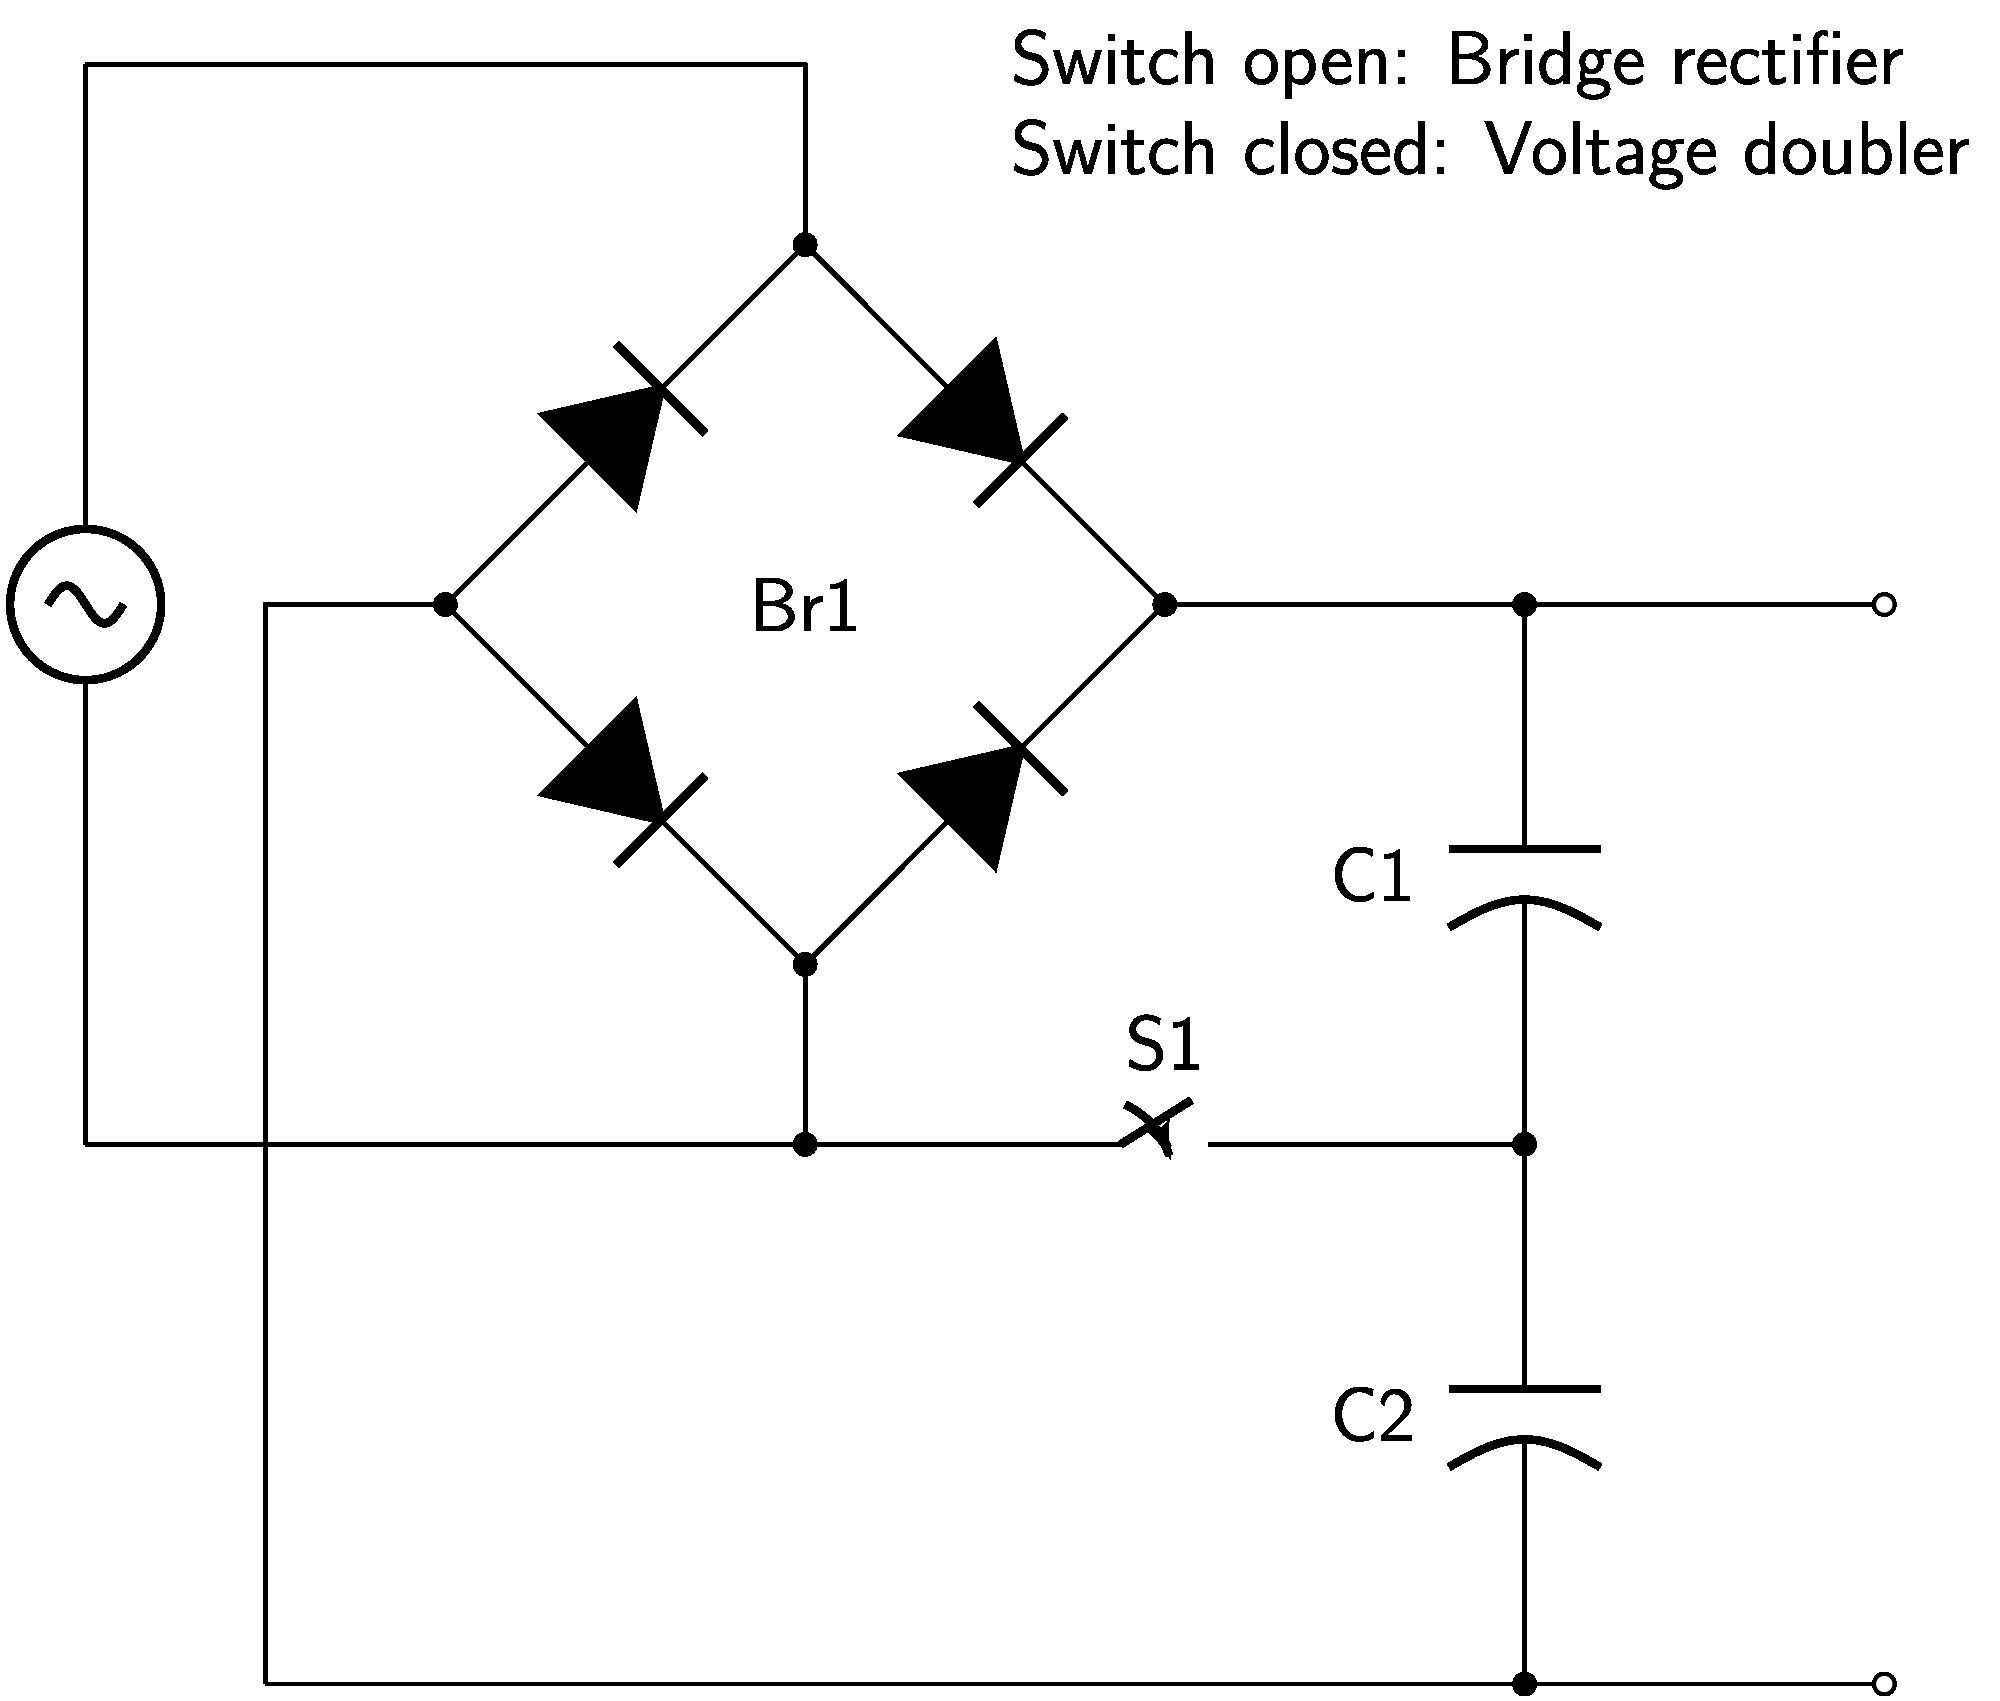 small resolution of way bridge rectifier wiring diagram components tube unusual kbpc3510 inside wiring diagram bridge rectifier